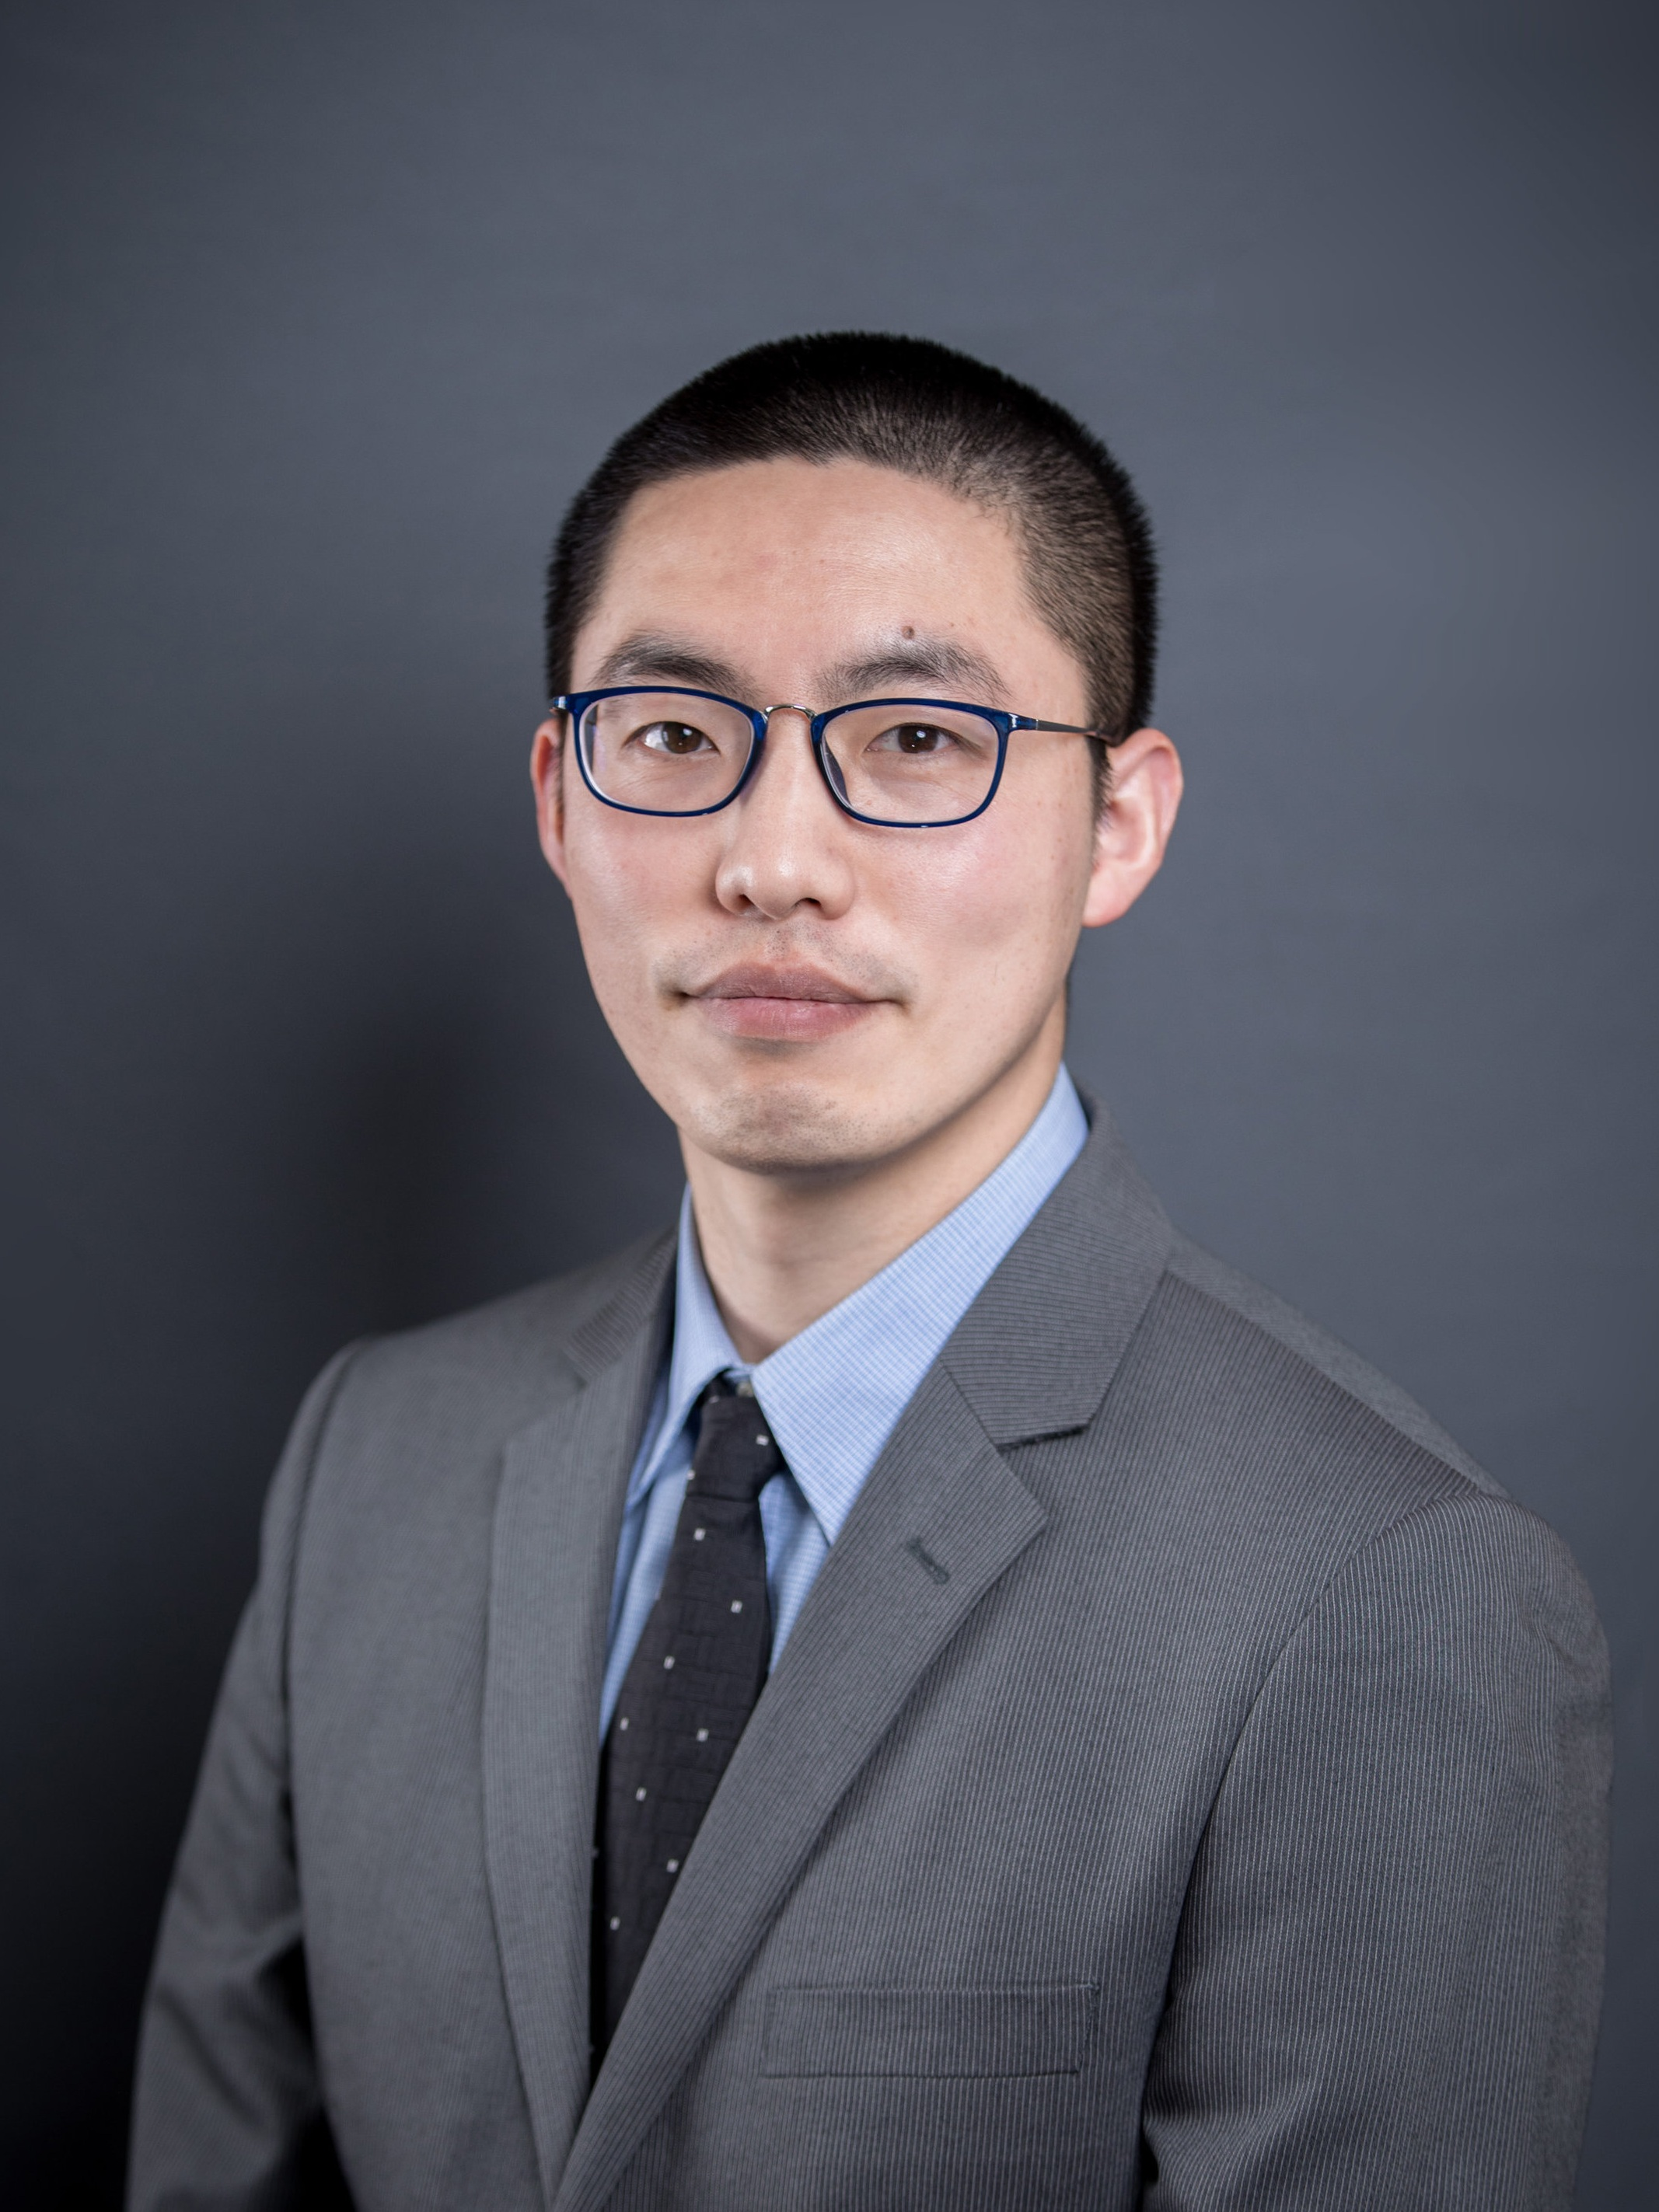 Nan    Physics Director & Math Teacher   Double major at USTC, former math teacher at special high school in NYC. Expert in teaching Math and Physics Olympiads competitions. He has helped many students to achieve a score of 800 in SAT/SAT2 Math.